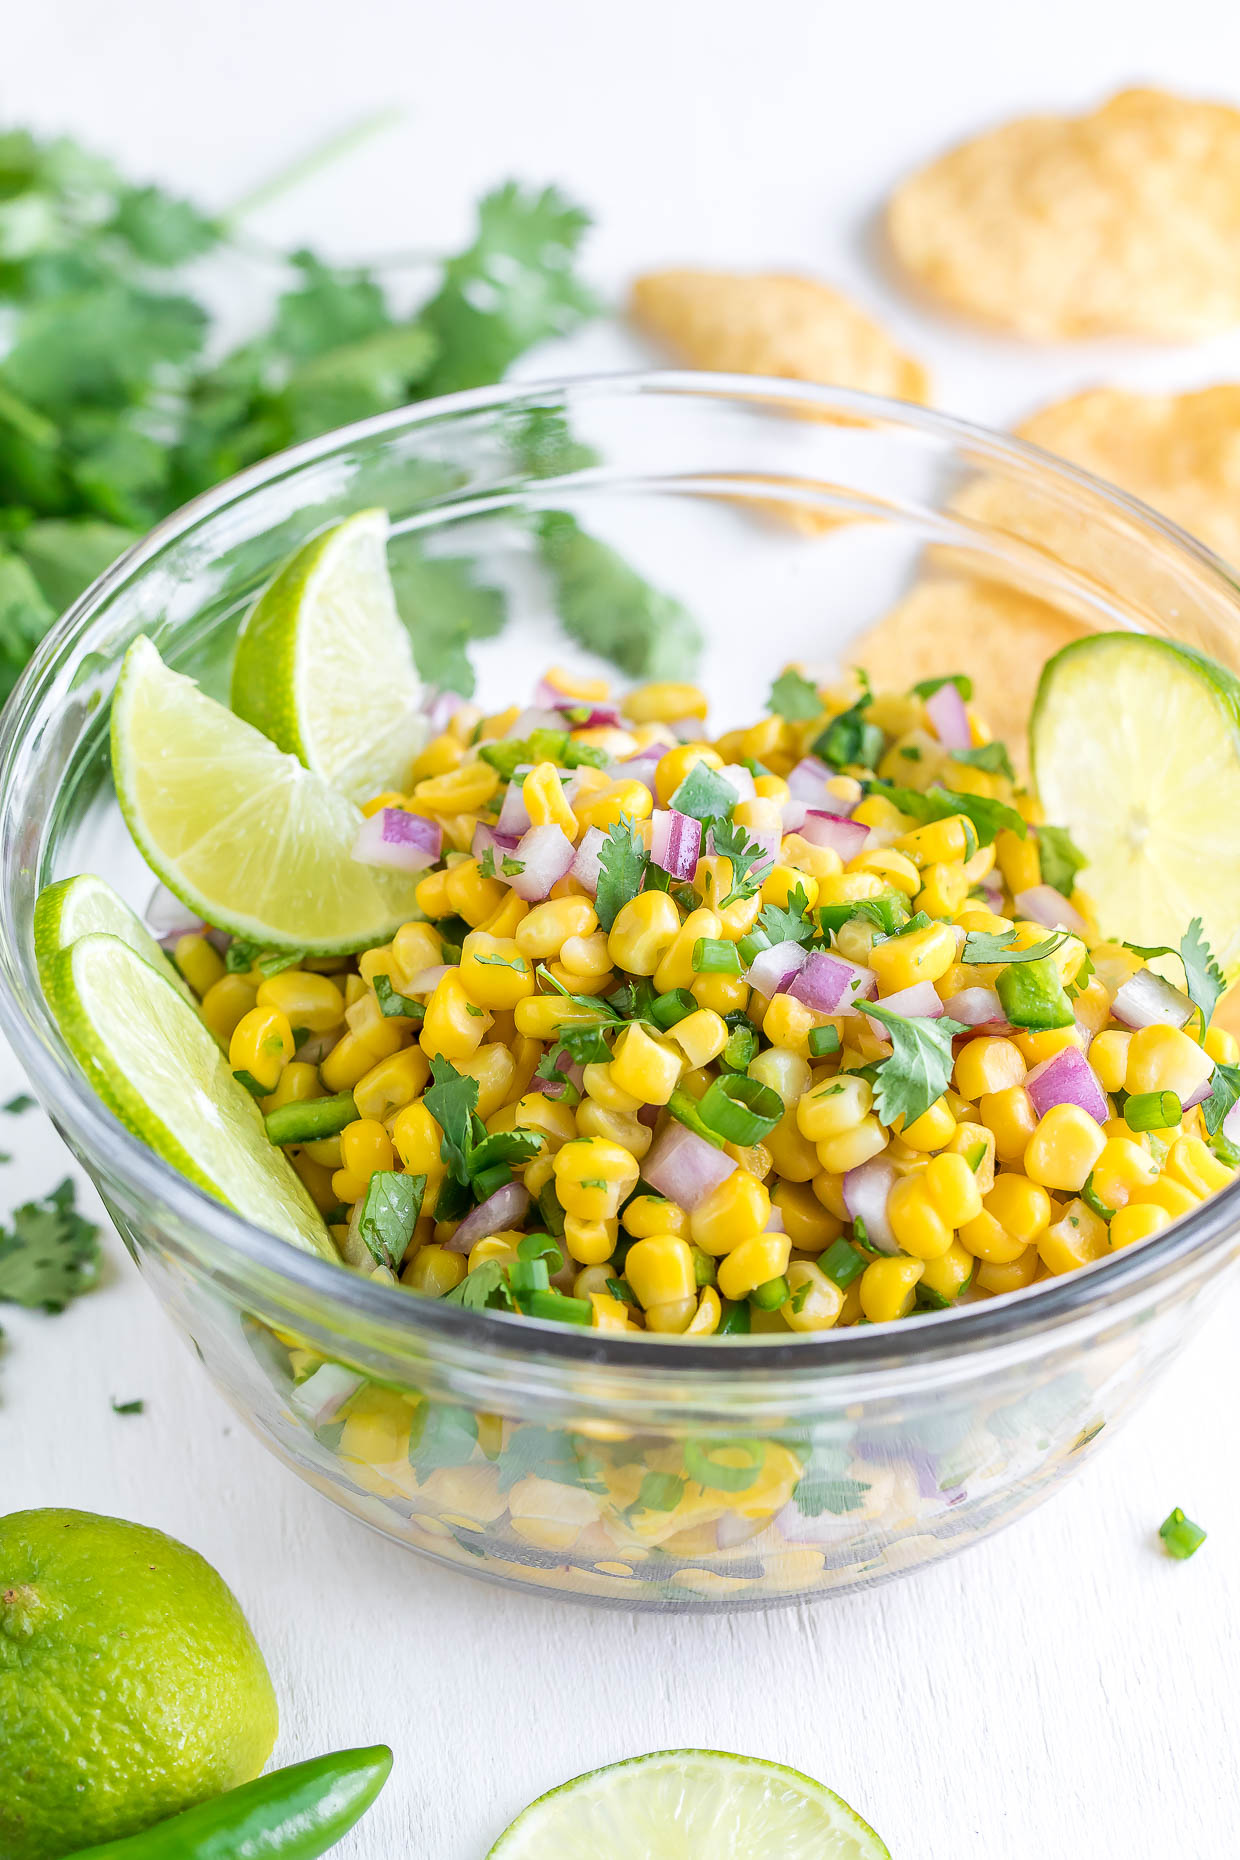 Copycat Chipotle Corn Salsa Recipe